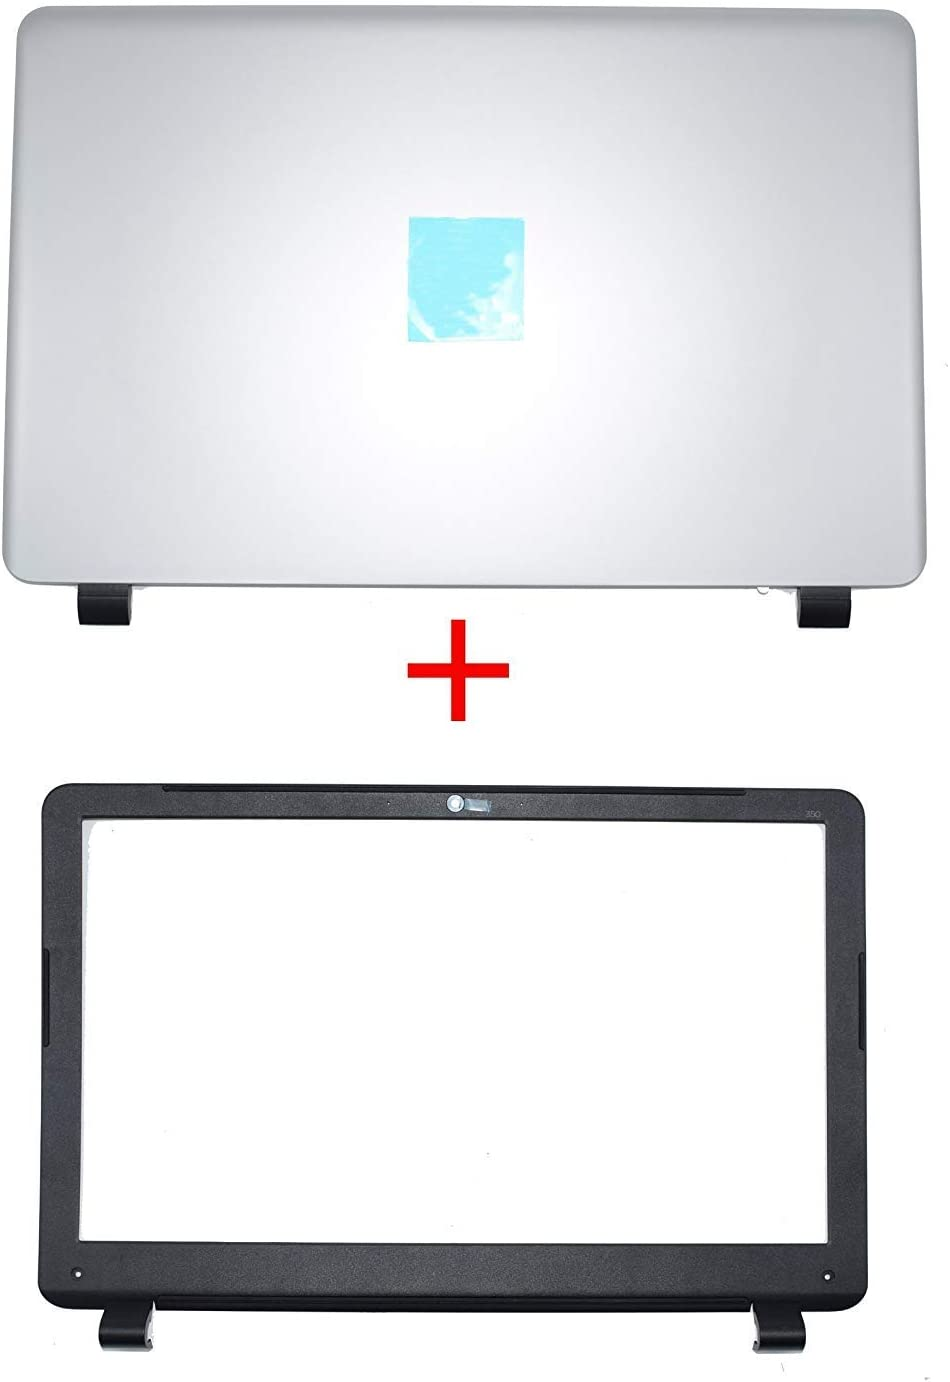 Compatible Replacement for HP 350 G1 LCD Rear Cover Screen Lid Top Shell & Front Frame LCD Bezel with Camera Hole 758057-001 758055-001